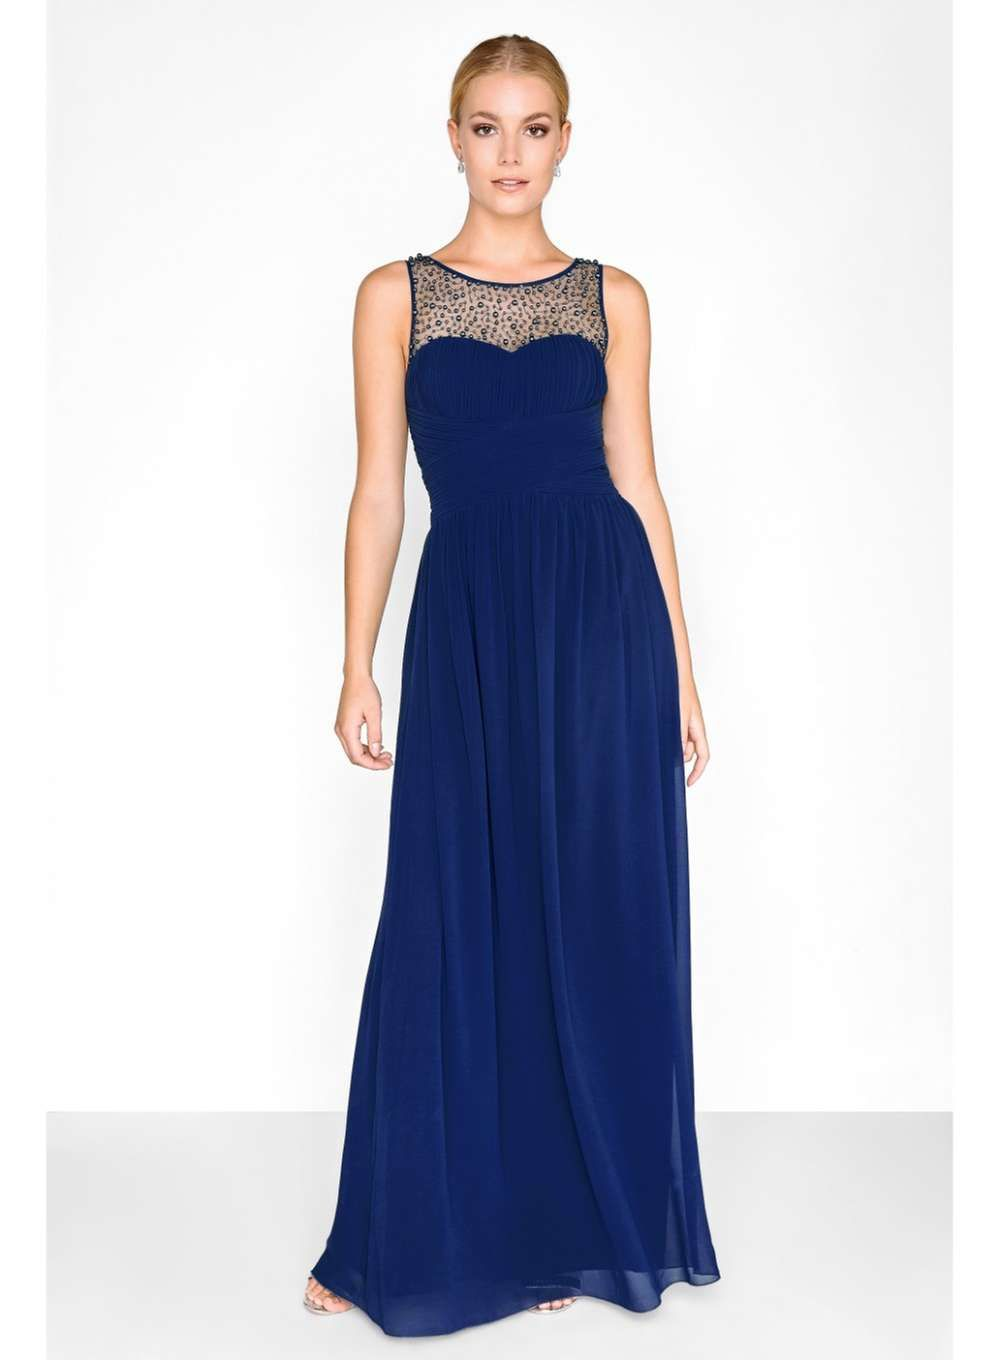 89a54b7a50c Little Mistress Navy Embellished Maxi Dress - View All New In - New ...